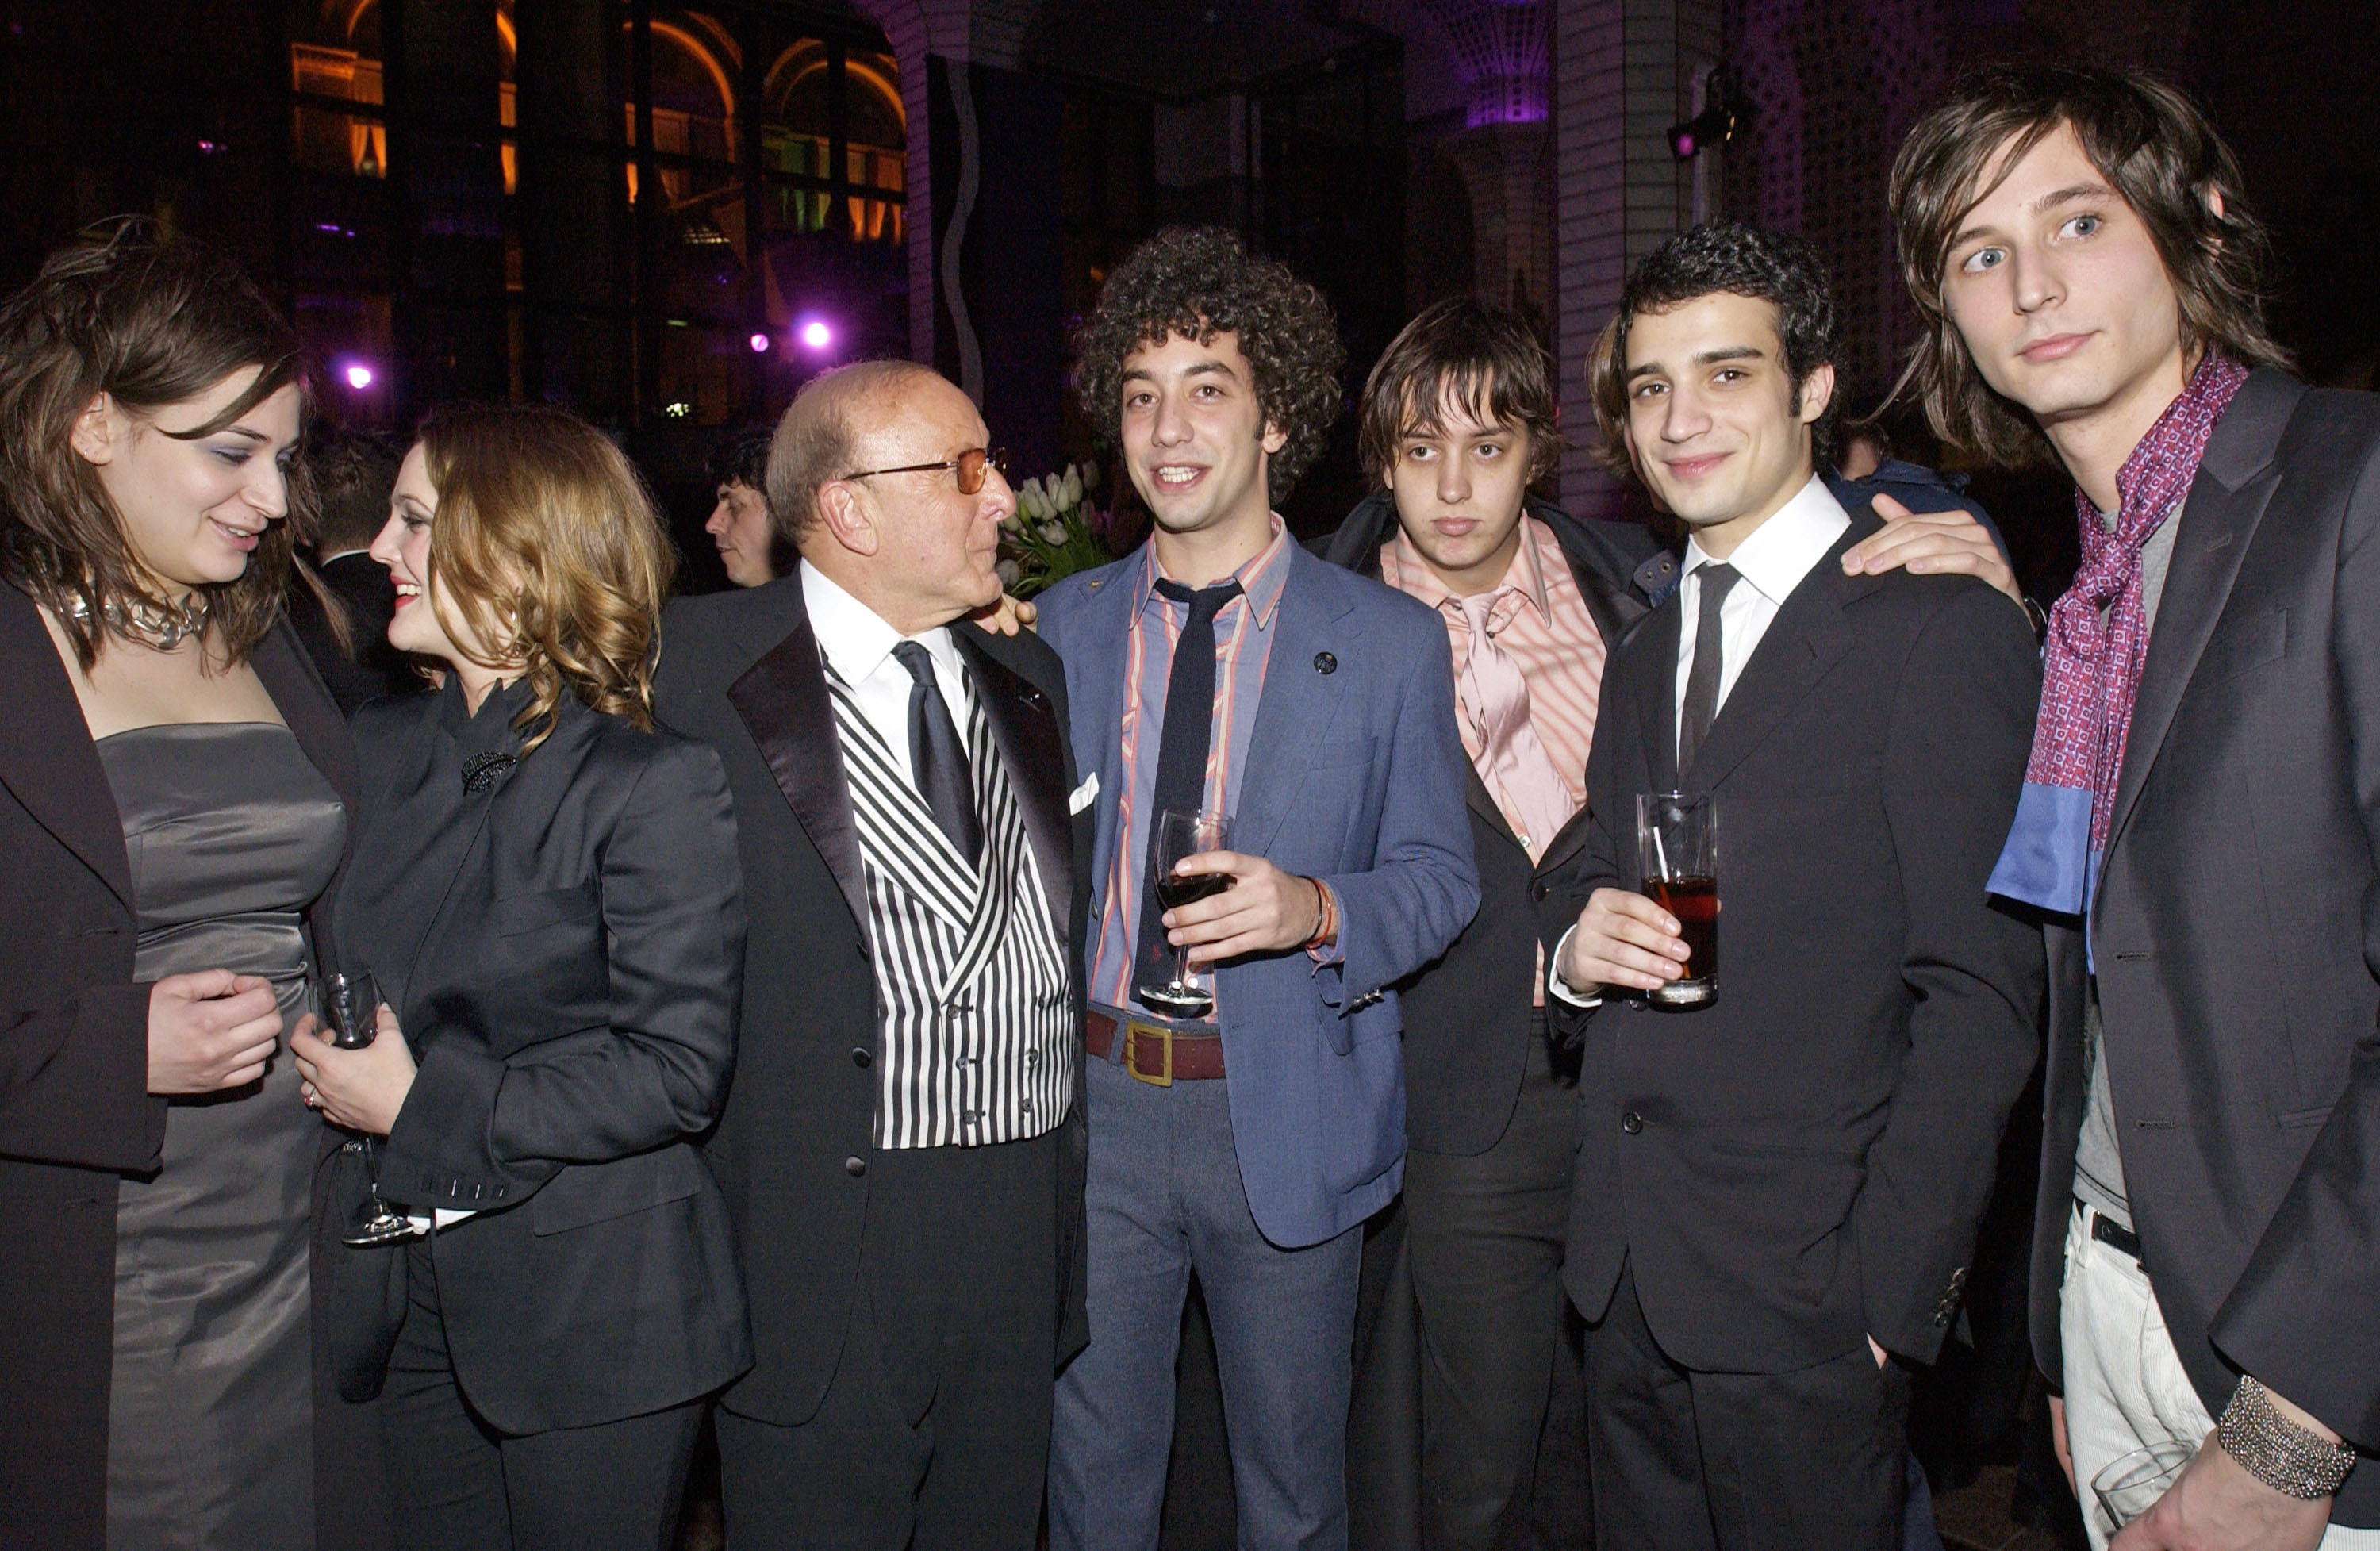 The strokes hits singles dating